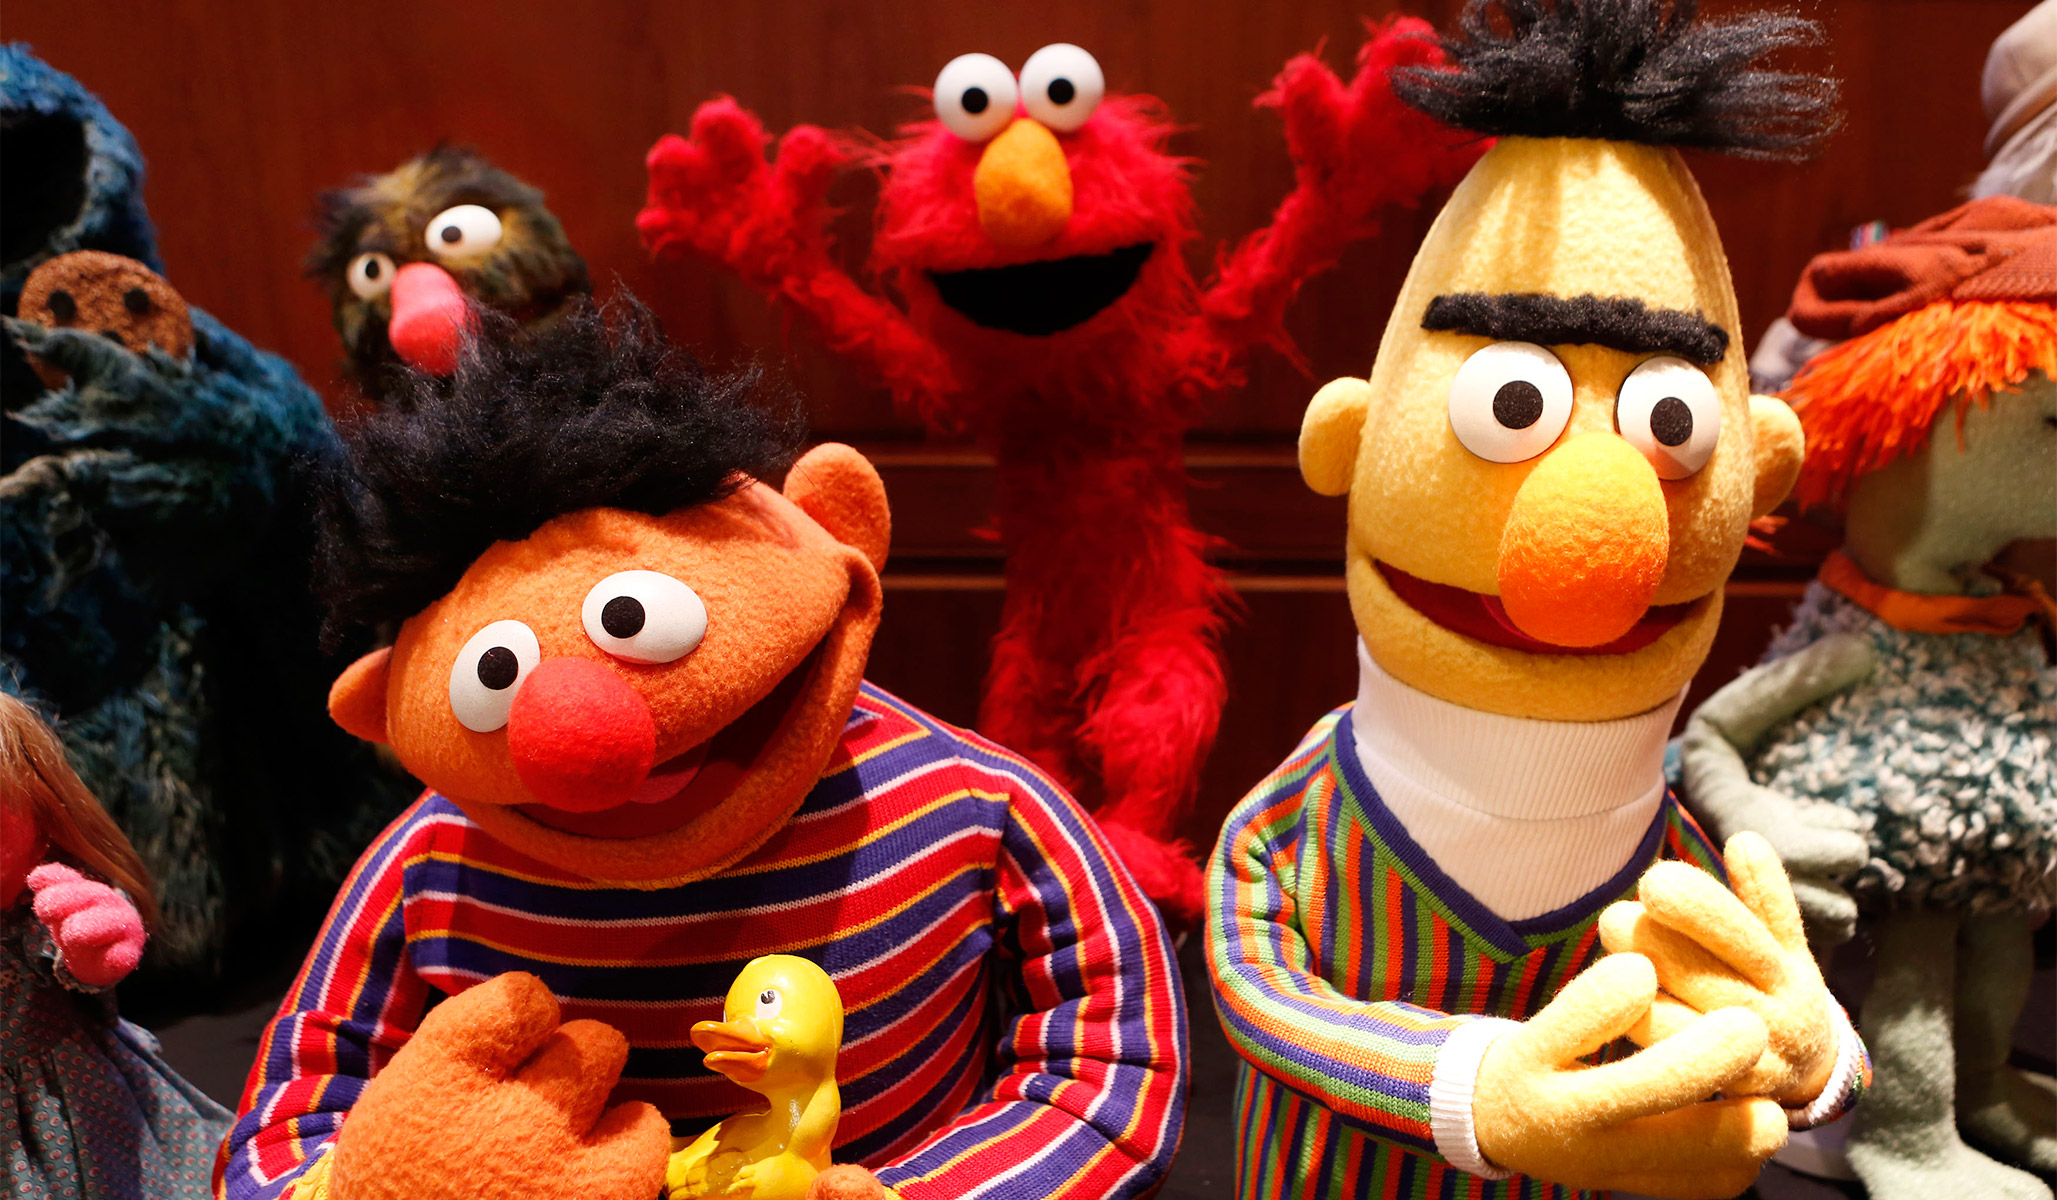 Should Sesame Street Be Scaring Kids?